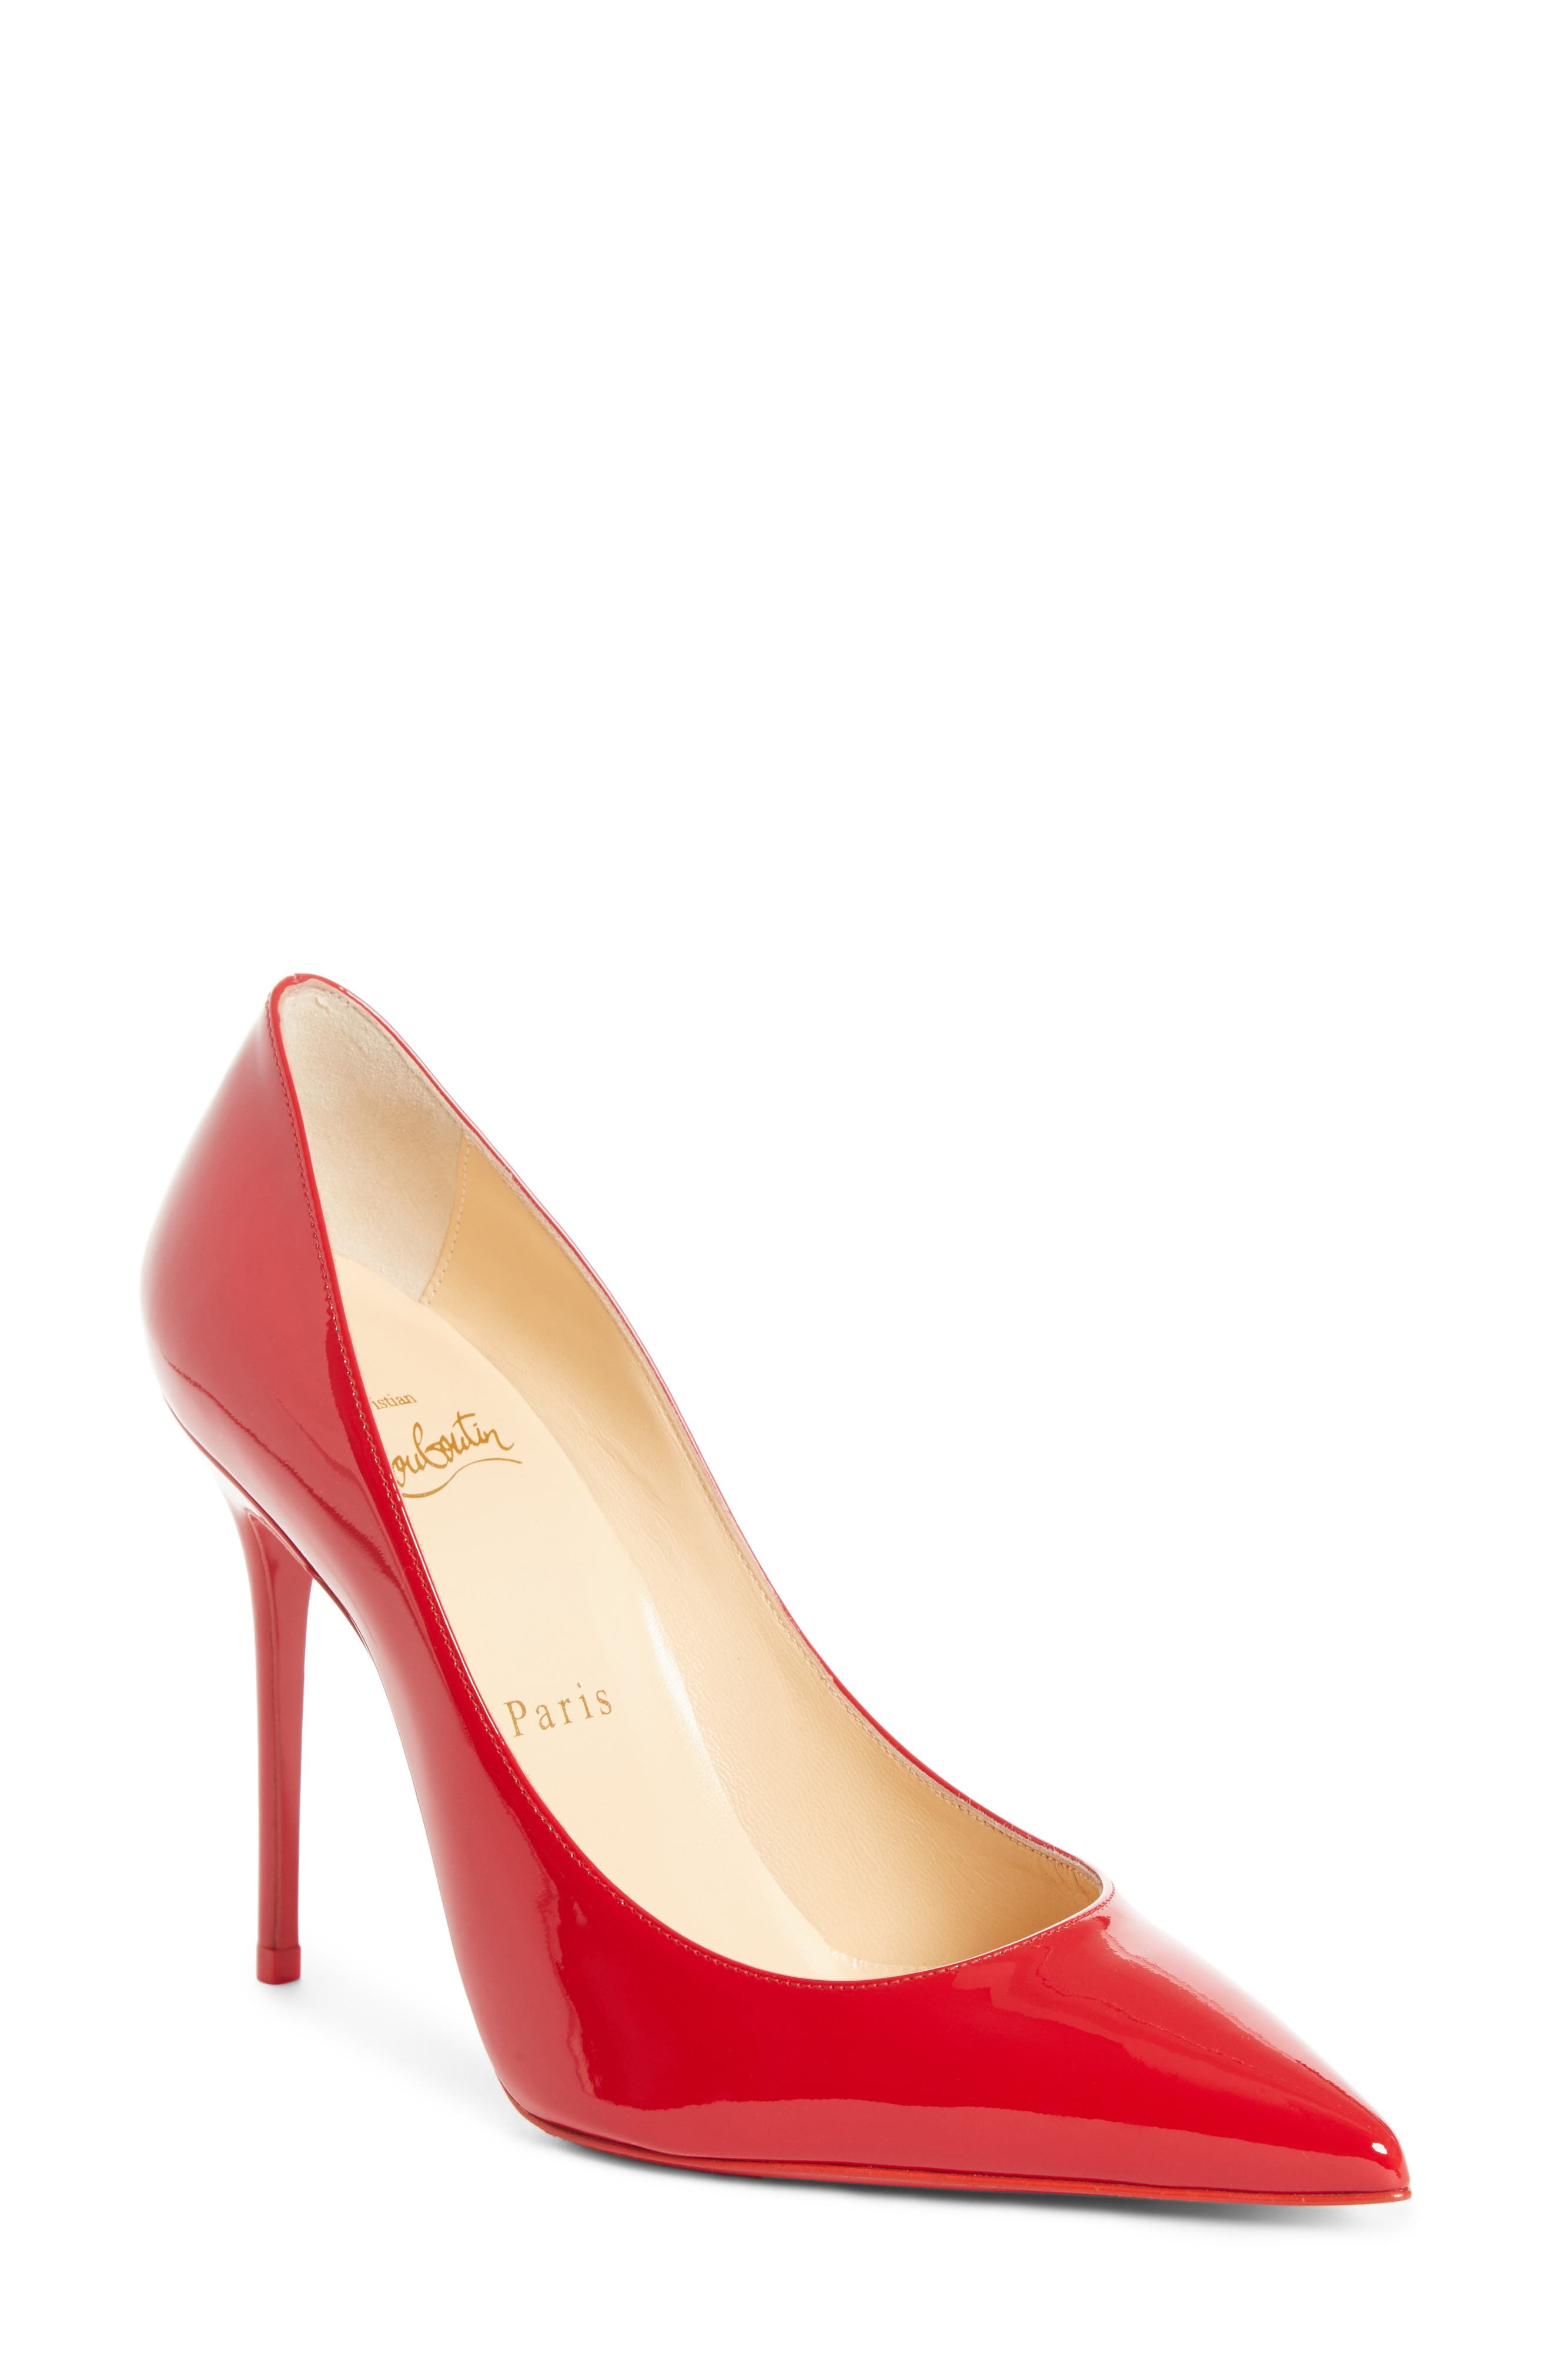 'Decollete' Pointy Toe Pump,                             Main thumbnail 1, color,                             623